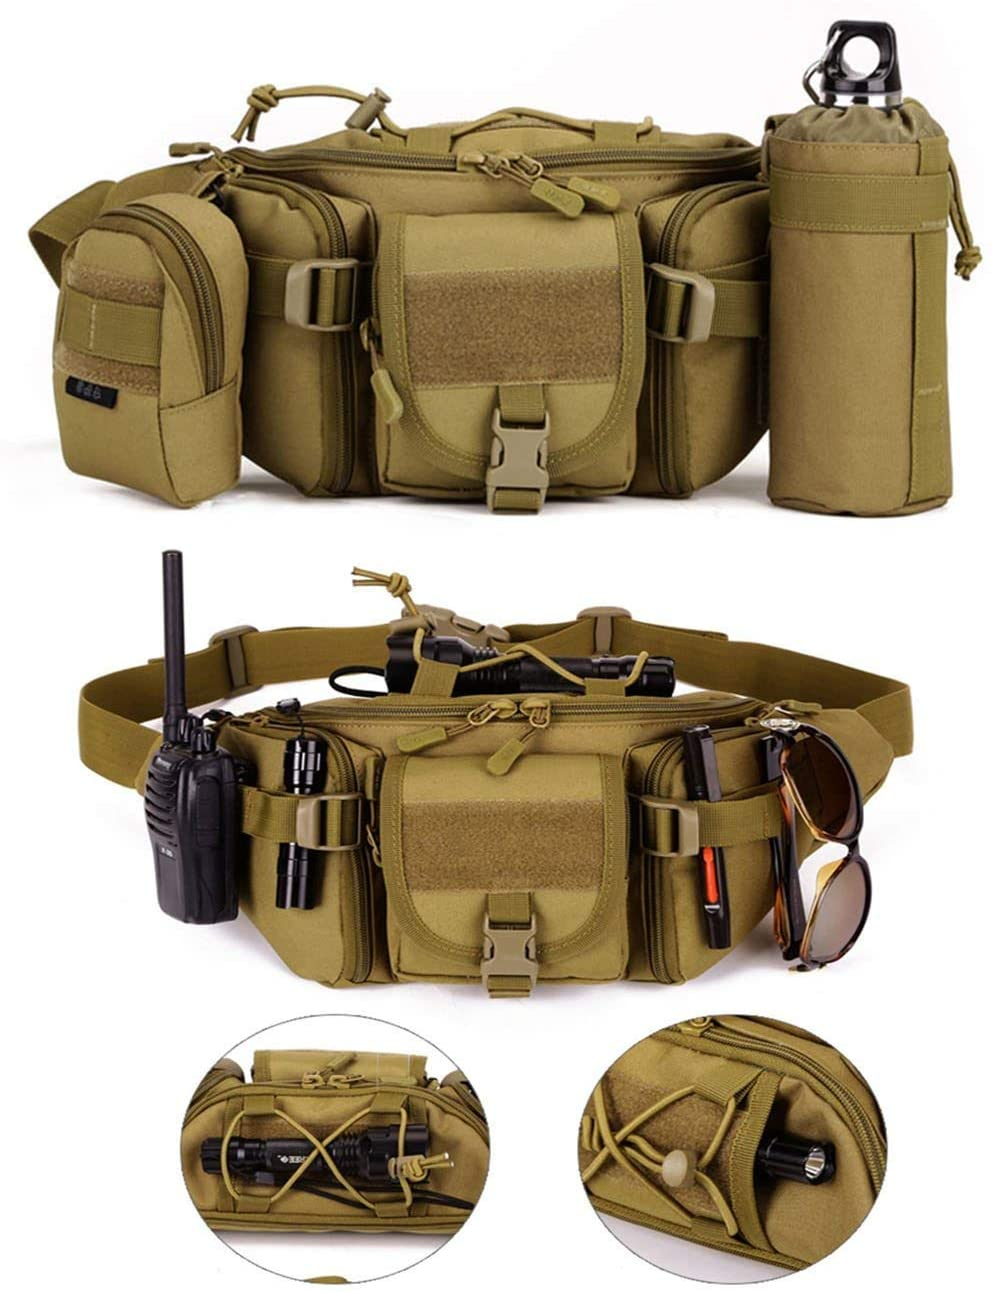 【BUY 2 SAVE $5】Utility Tactical Fanny Pack